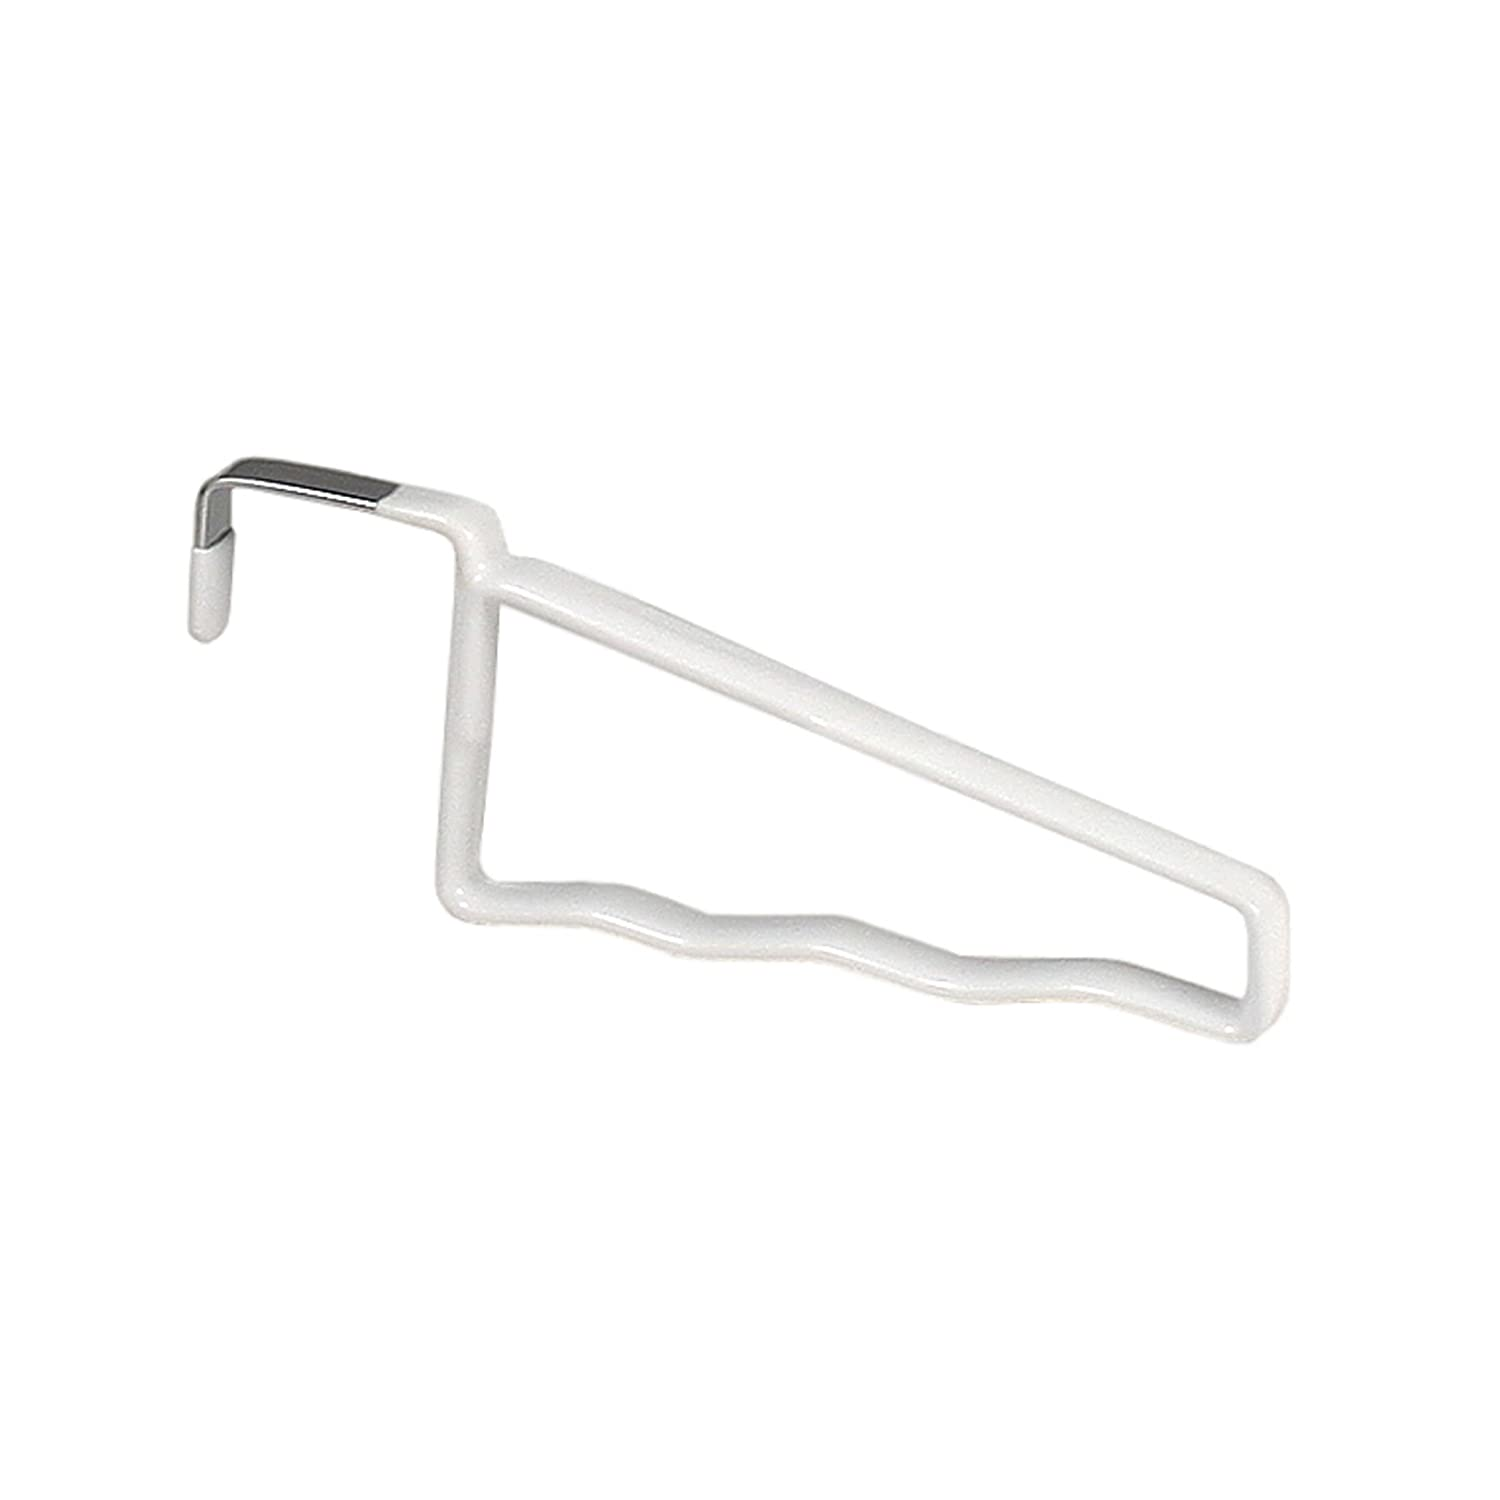 Spectrum Diversified Over the Door Hook Rack, White 16600-24